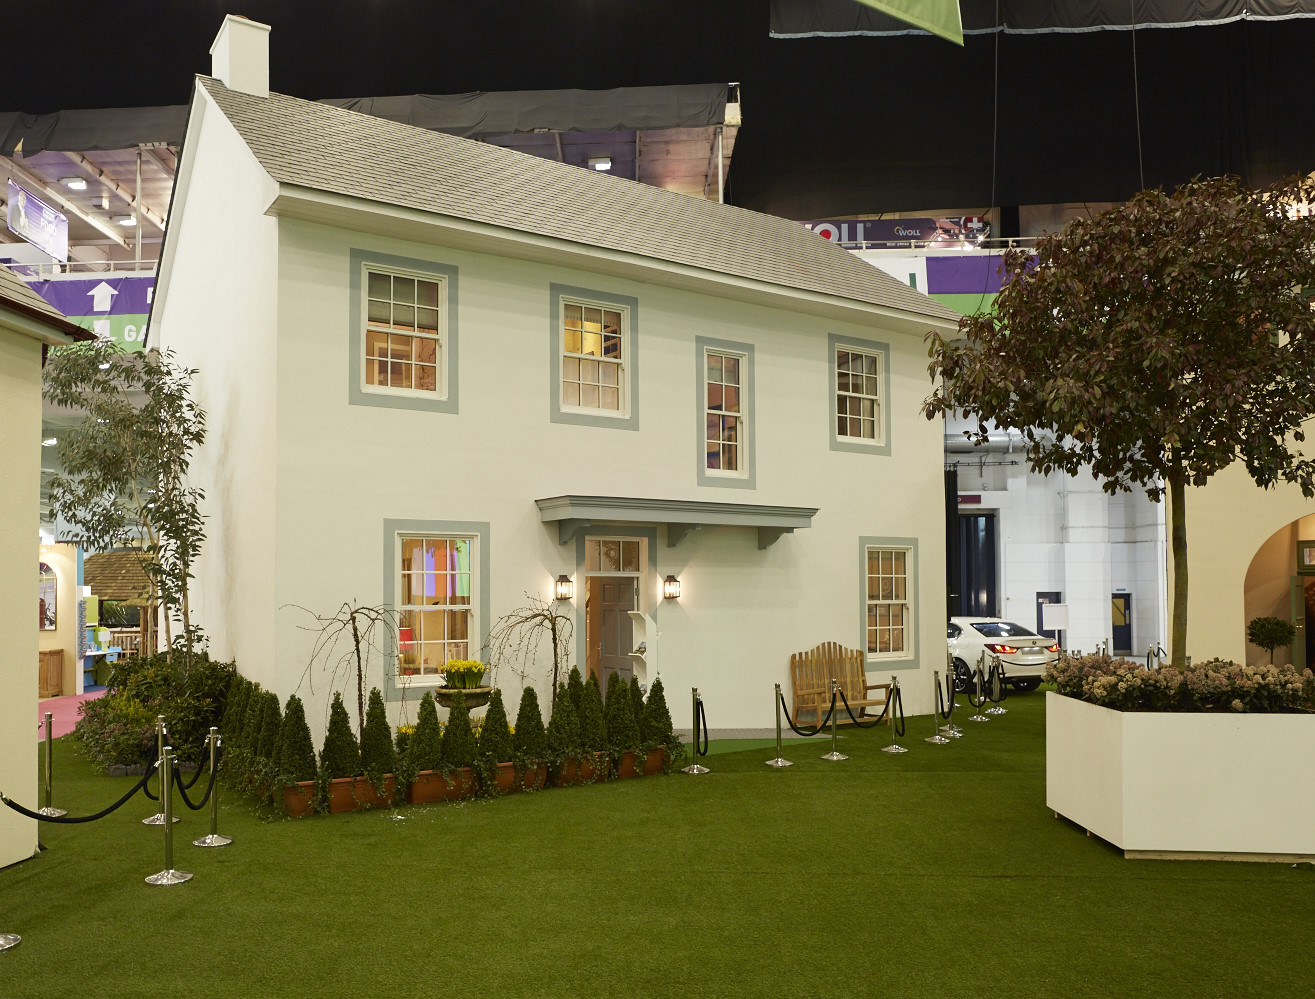 SCOTTISH TRADITIONAL VERNACULAR - IDEAL HOME SHOW 2014 - External Exhibit